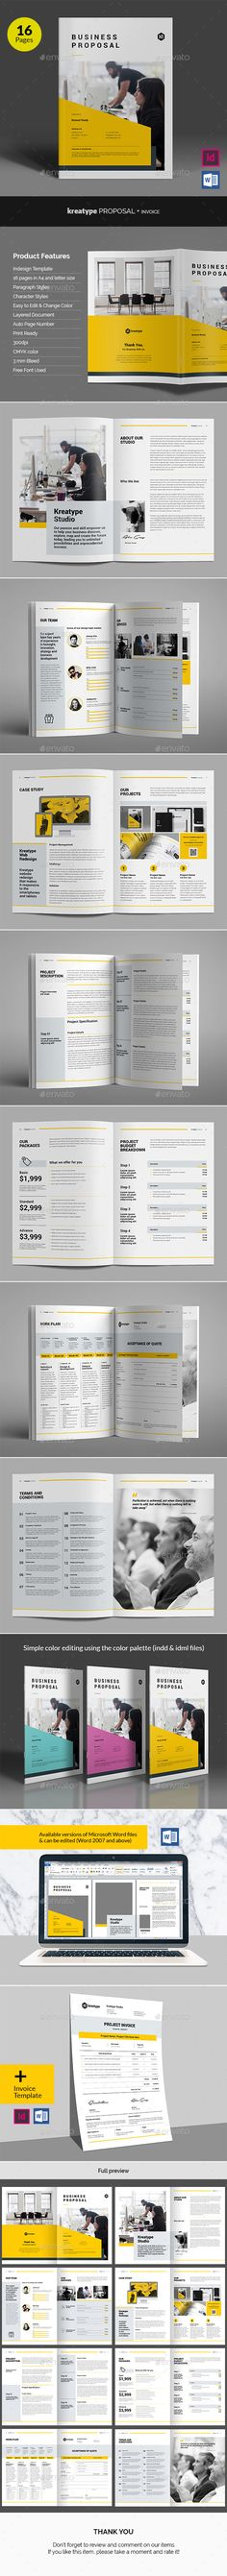 Kreatype Business Proposal v05 by heriwibowo  Kreatype Business Proposal v.05 The Business Proposal, clean and creative template. This layout is suitable for any project purpo